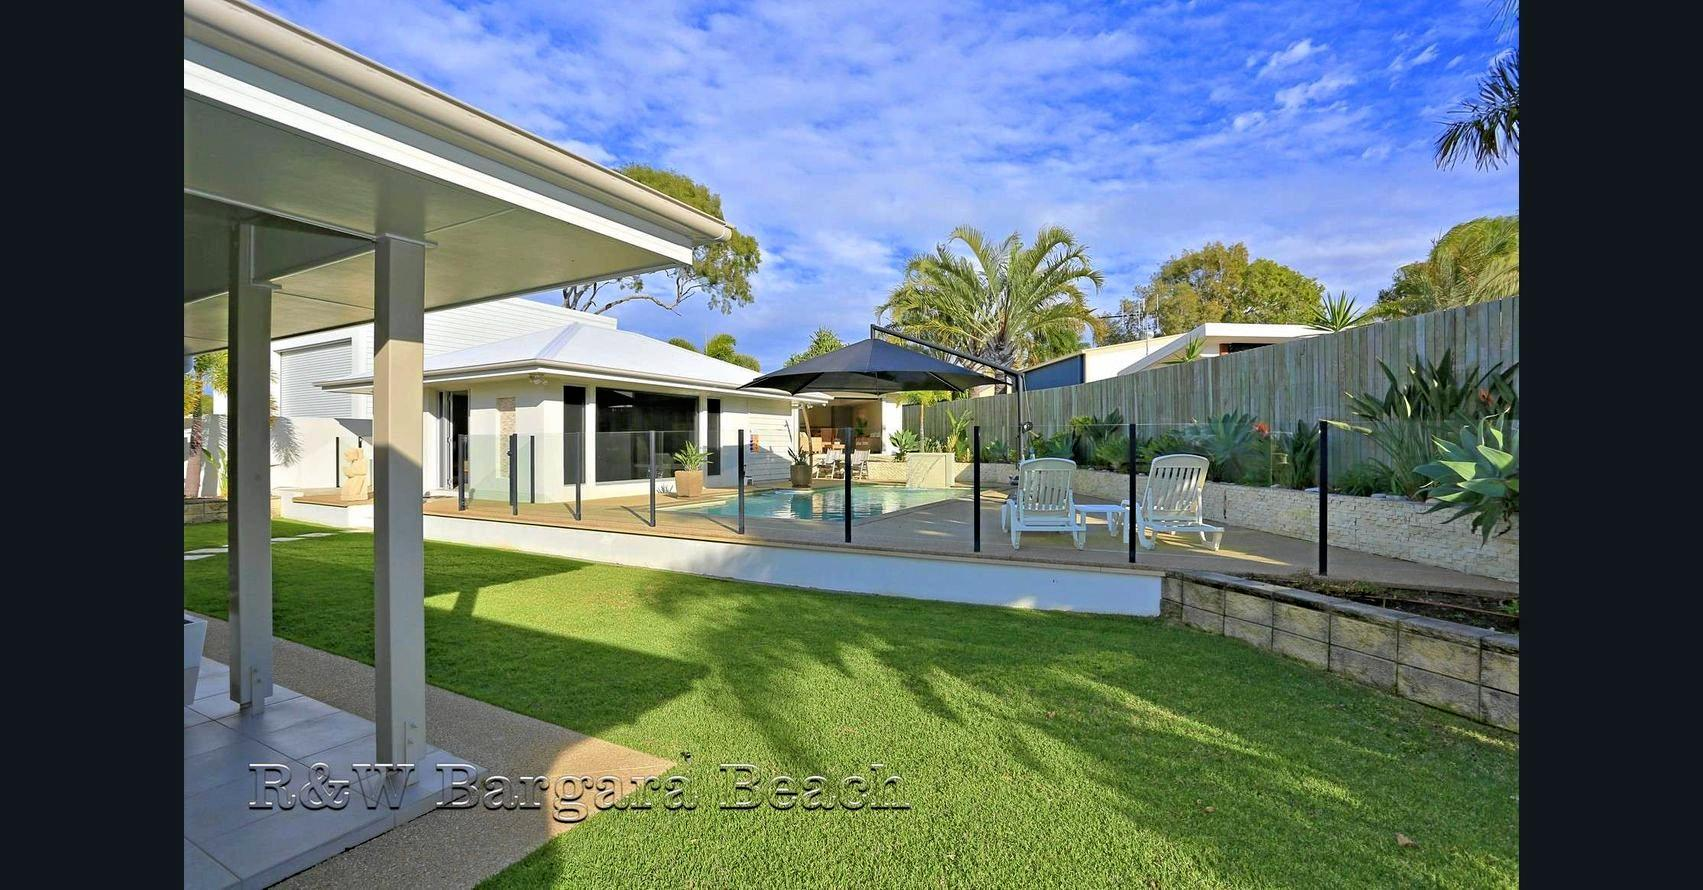 6 Anchorage Court Bargara is up for rent for $995 a week.